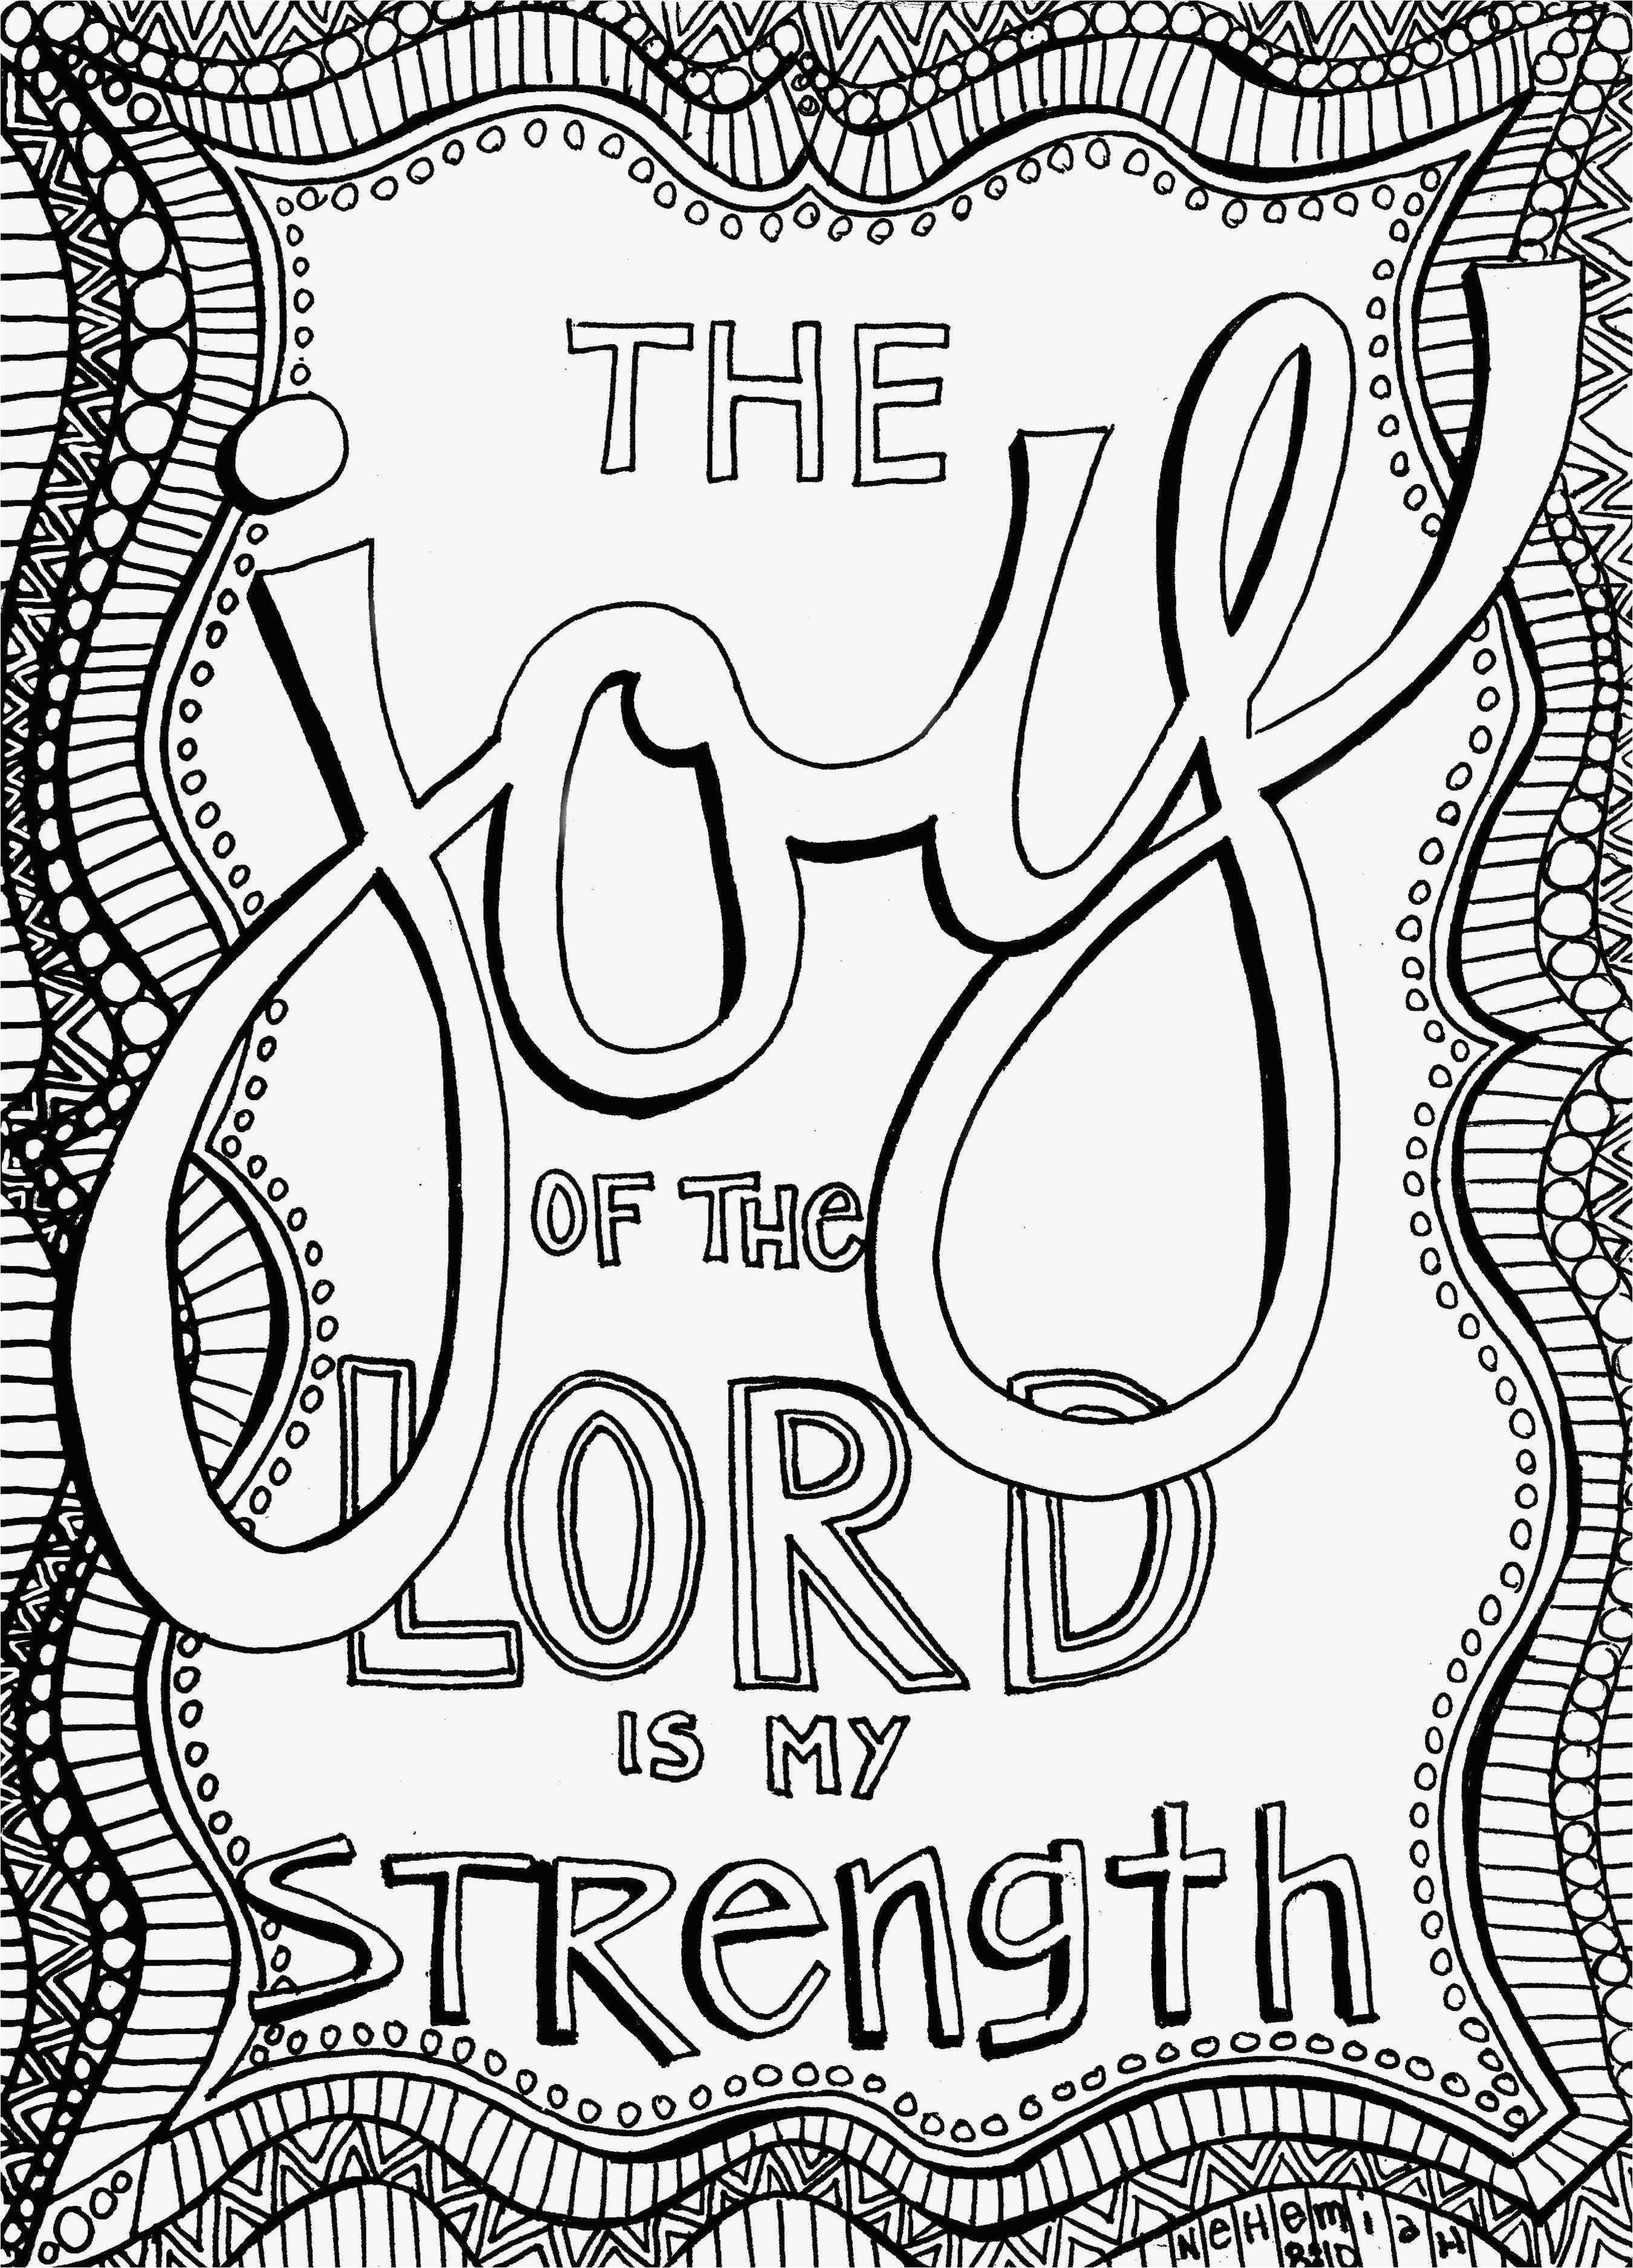 coloring pages with bible verses Collection-Free Christian Coloring Pages with Scripture Inspirational Printable Home Coloring Pages Best Color Sheet 0d – 11-j